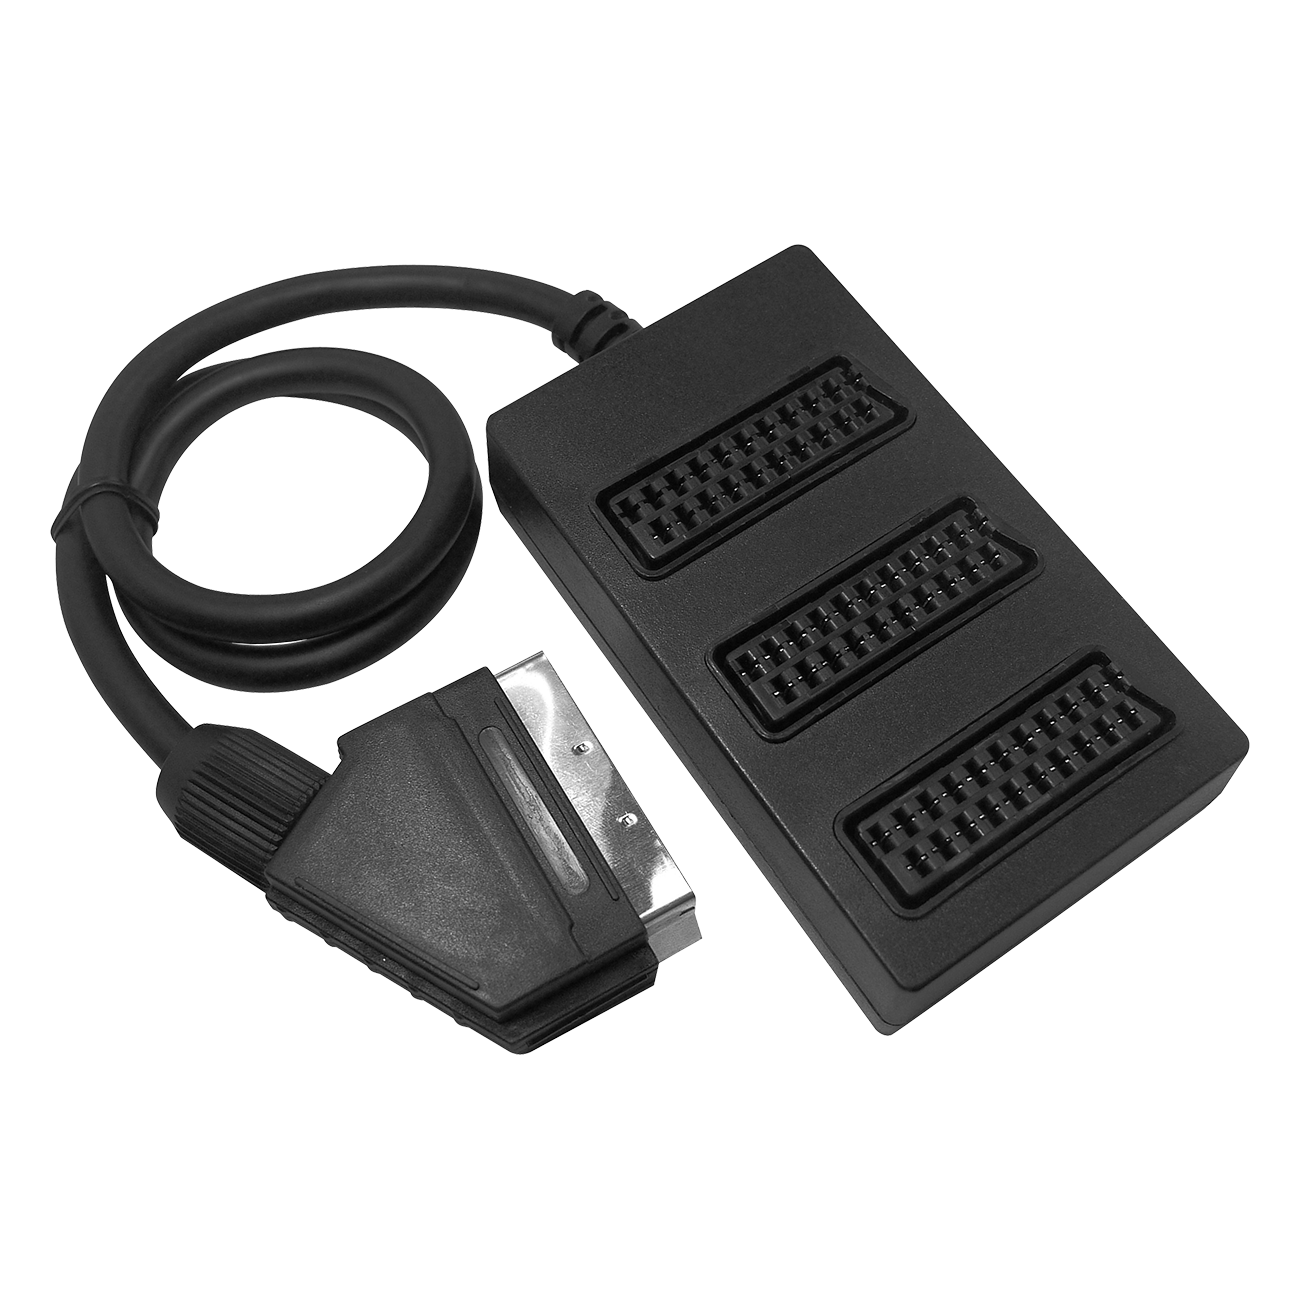 SAV 134-000 SCART adapter